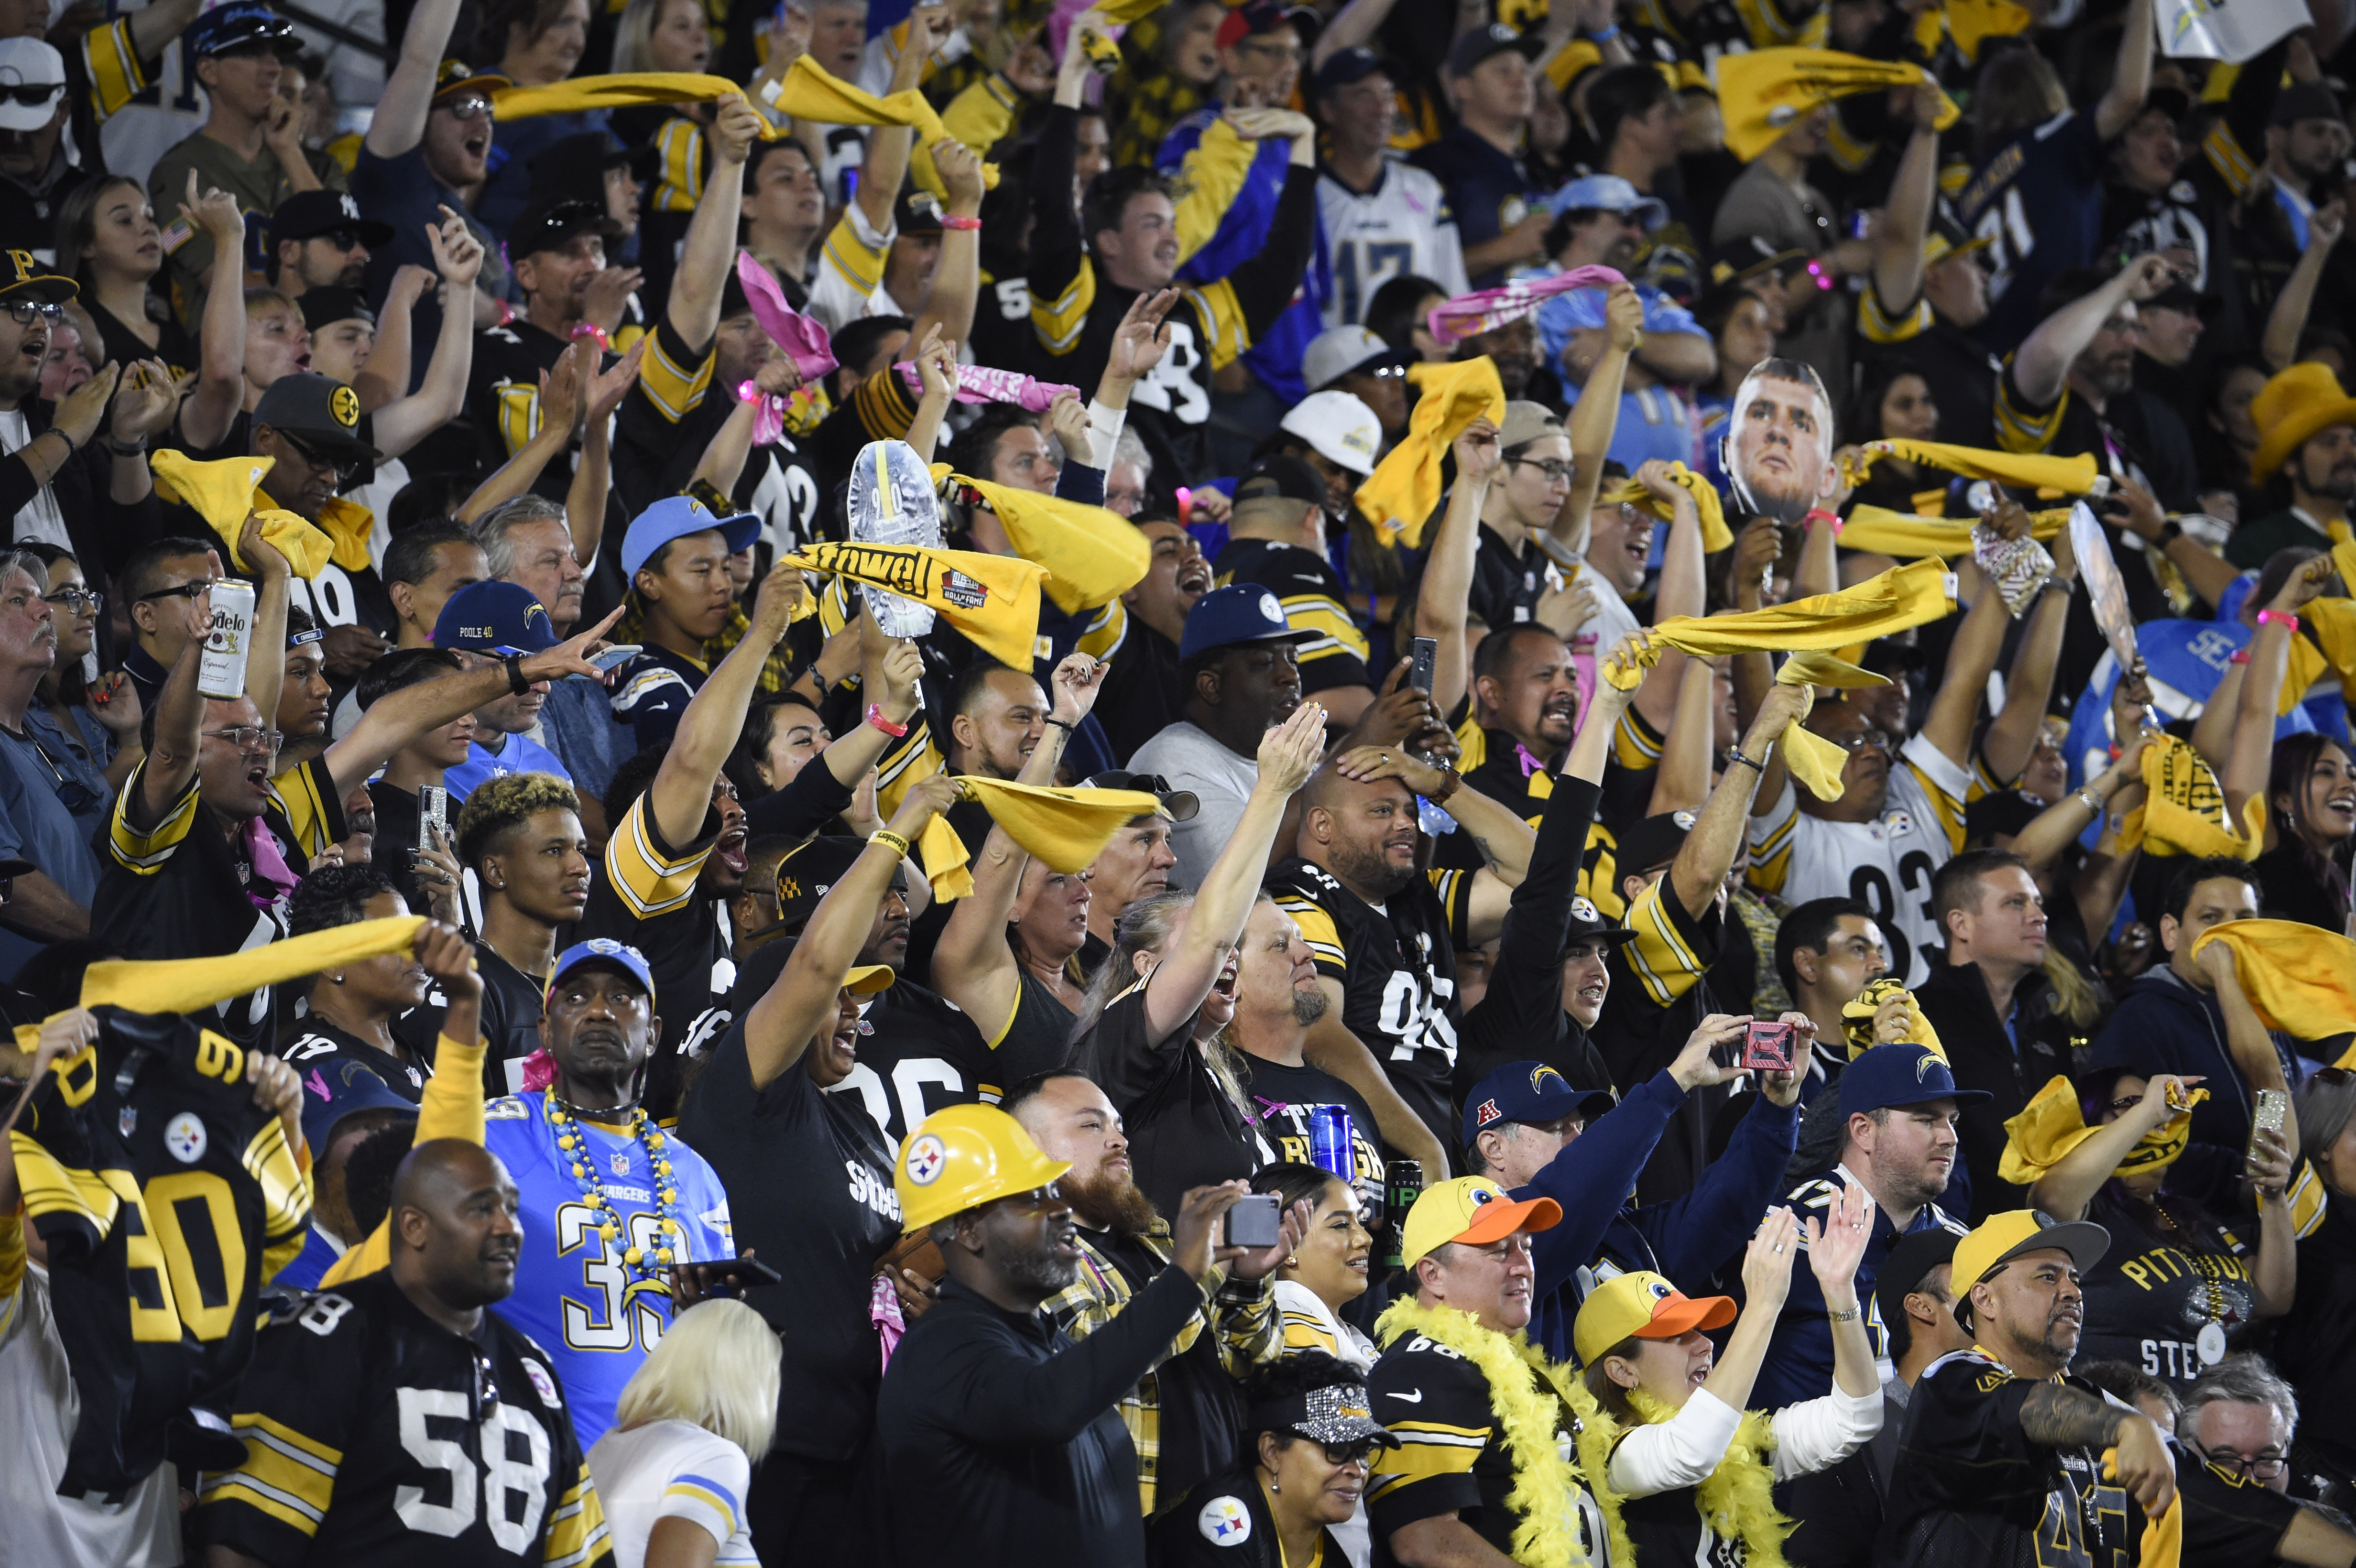 Fans cheer as the Los Angeles Chargers take on the Pittsburgh Steelers look in the first quarter at Dignity Health Sports Park October 13, 2019 in Carson, California.